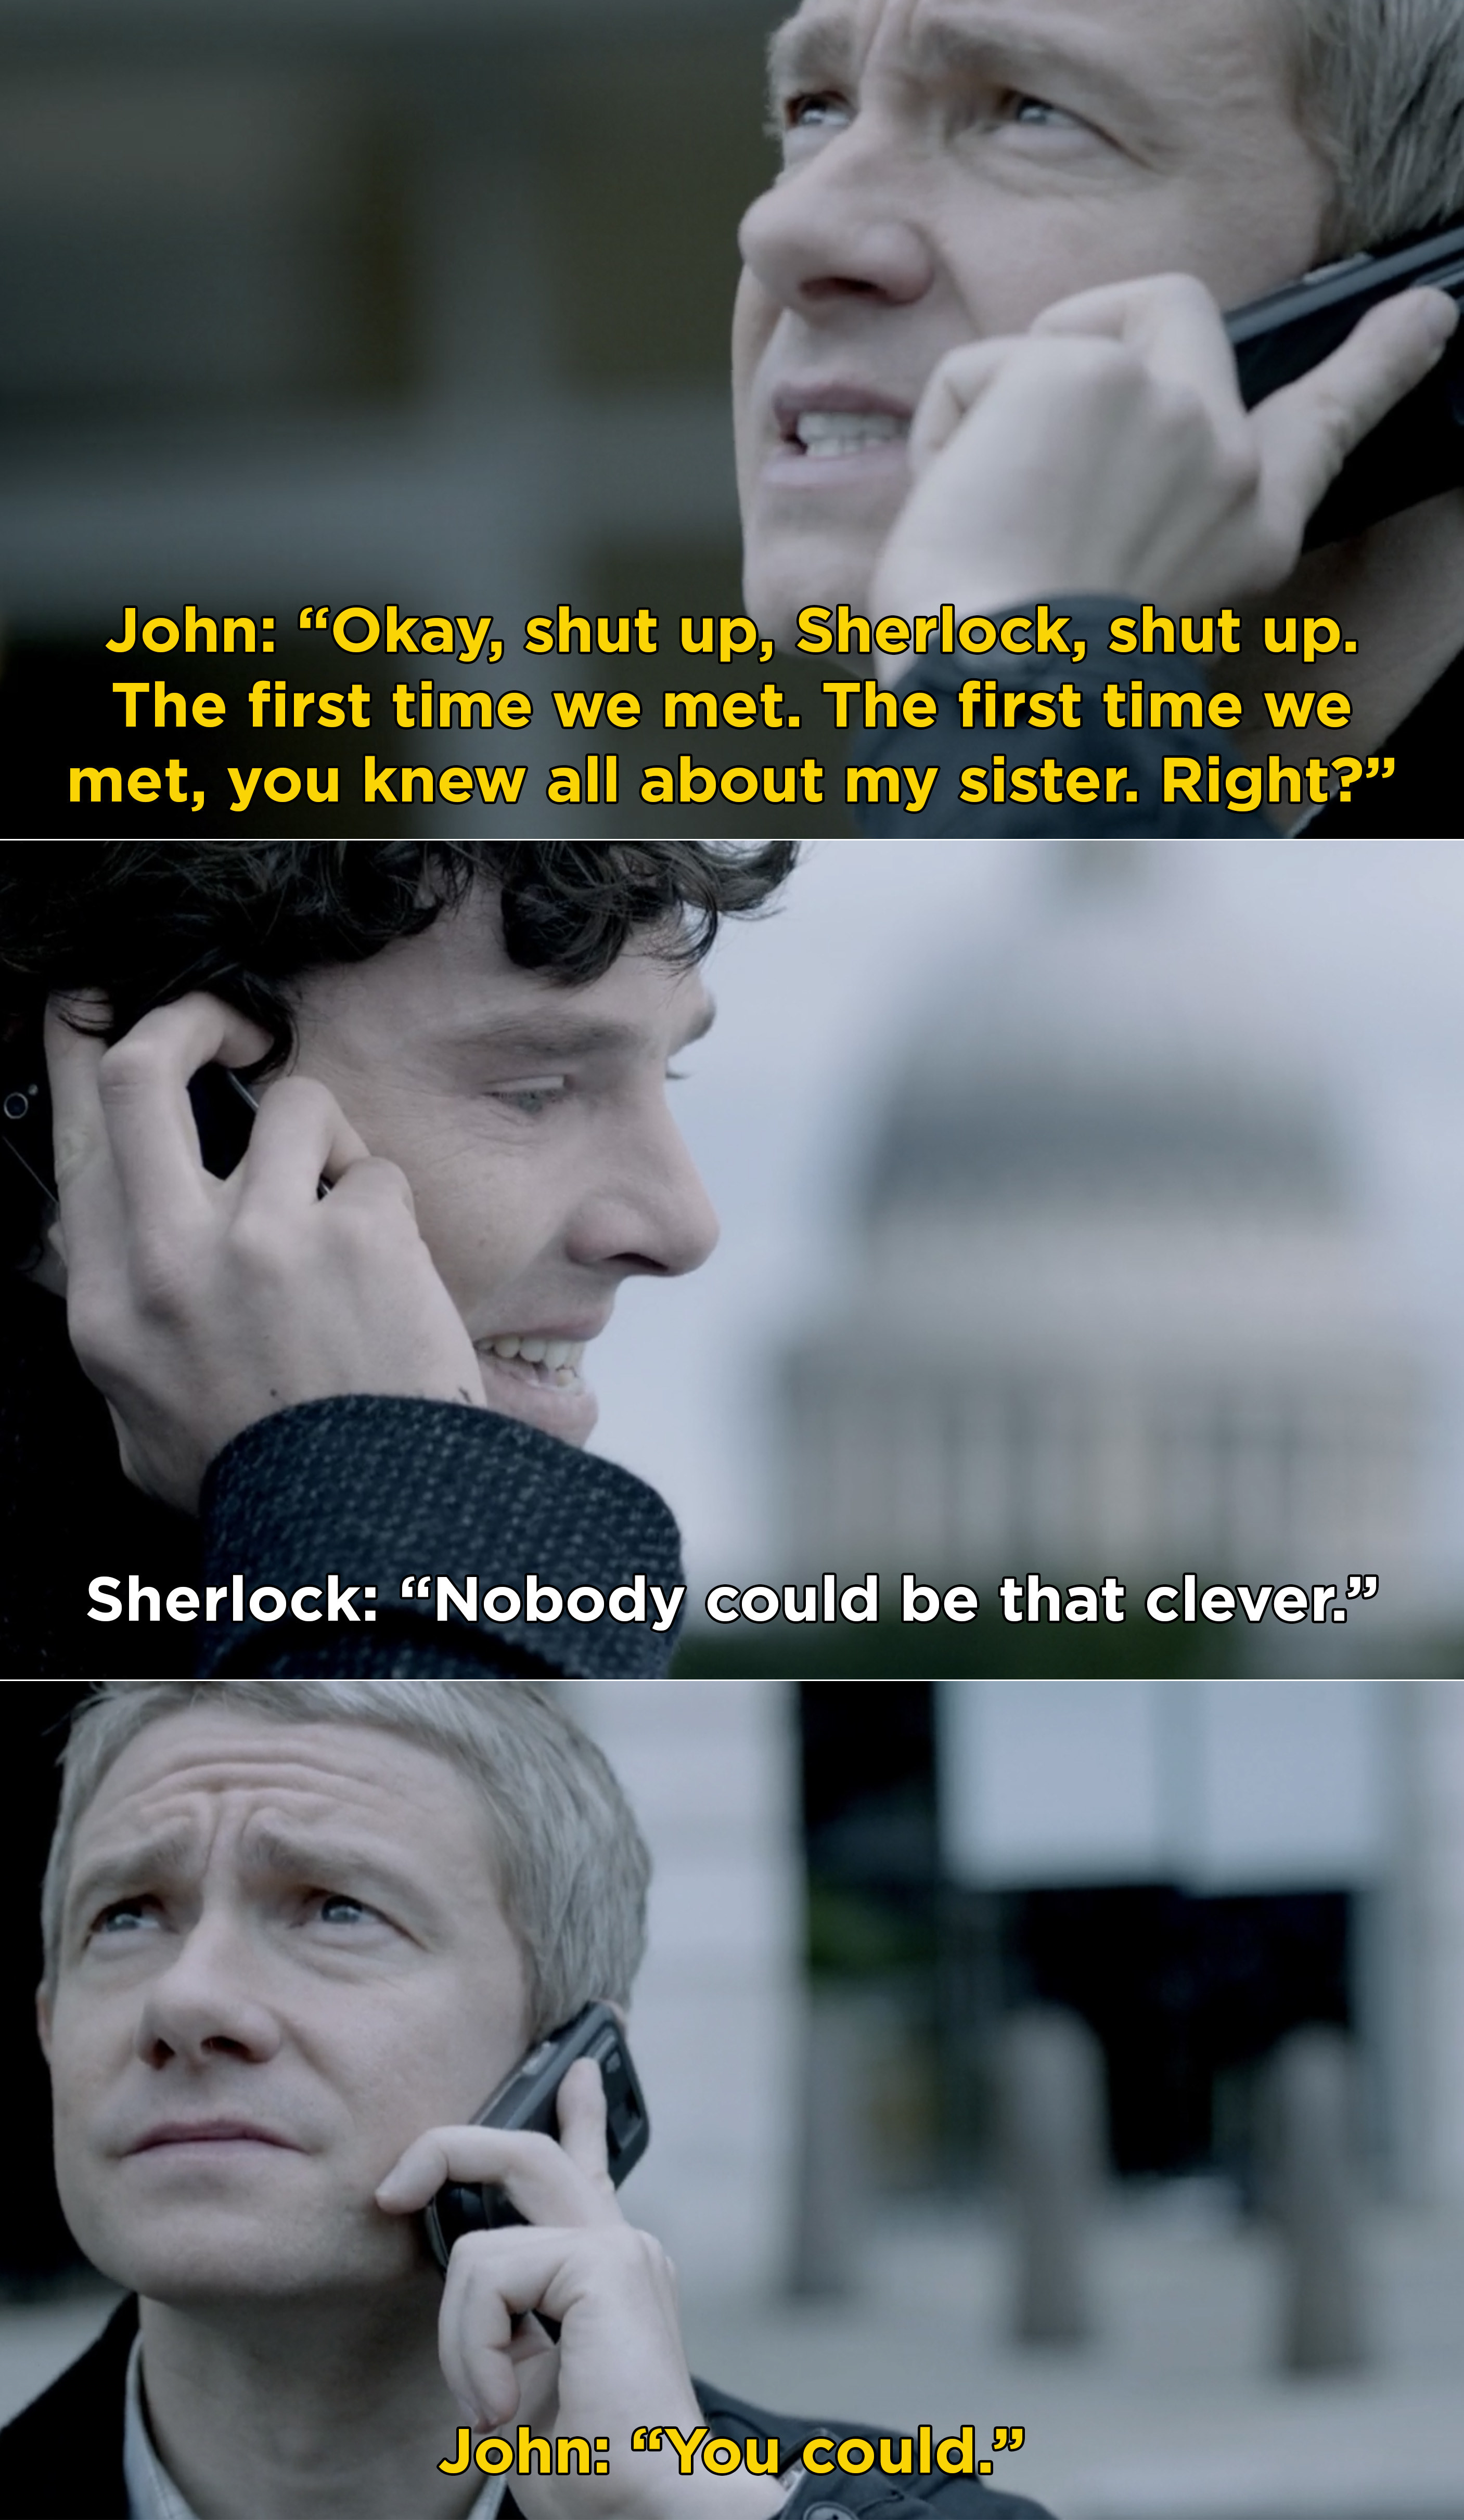 Sherlock and John talking while Sherlock is on the ledge of a building